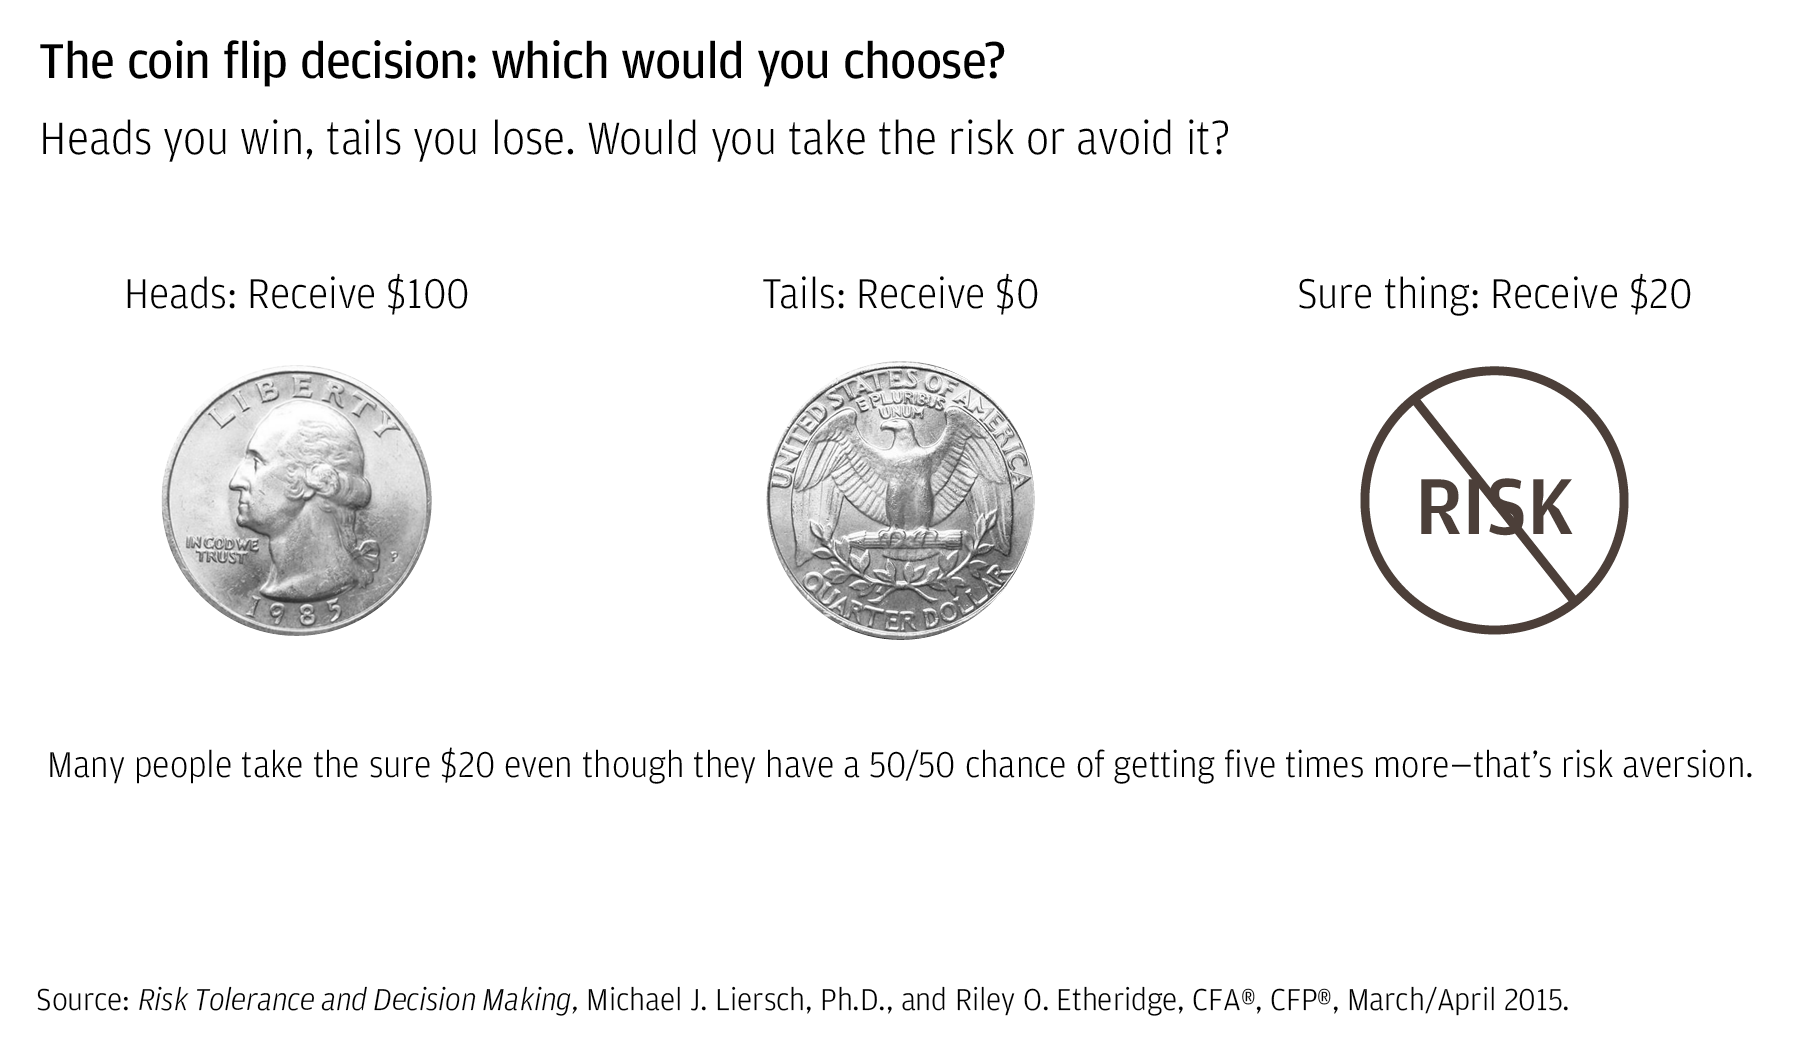 The coin flip decision: Which would you choose?